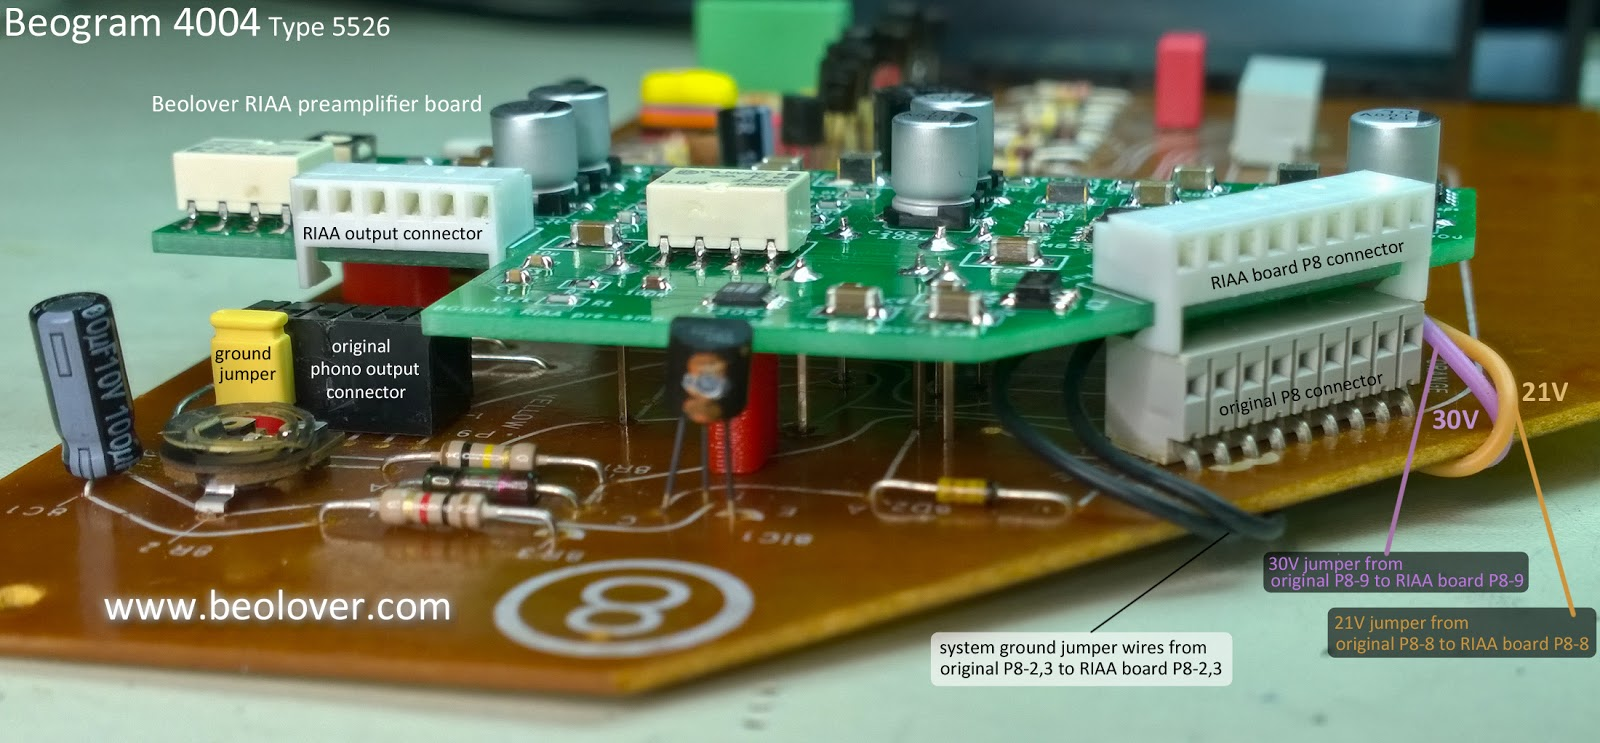 beolover: Beogram 4004 Type 5526: RIAA preamp board hiccup